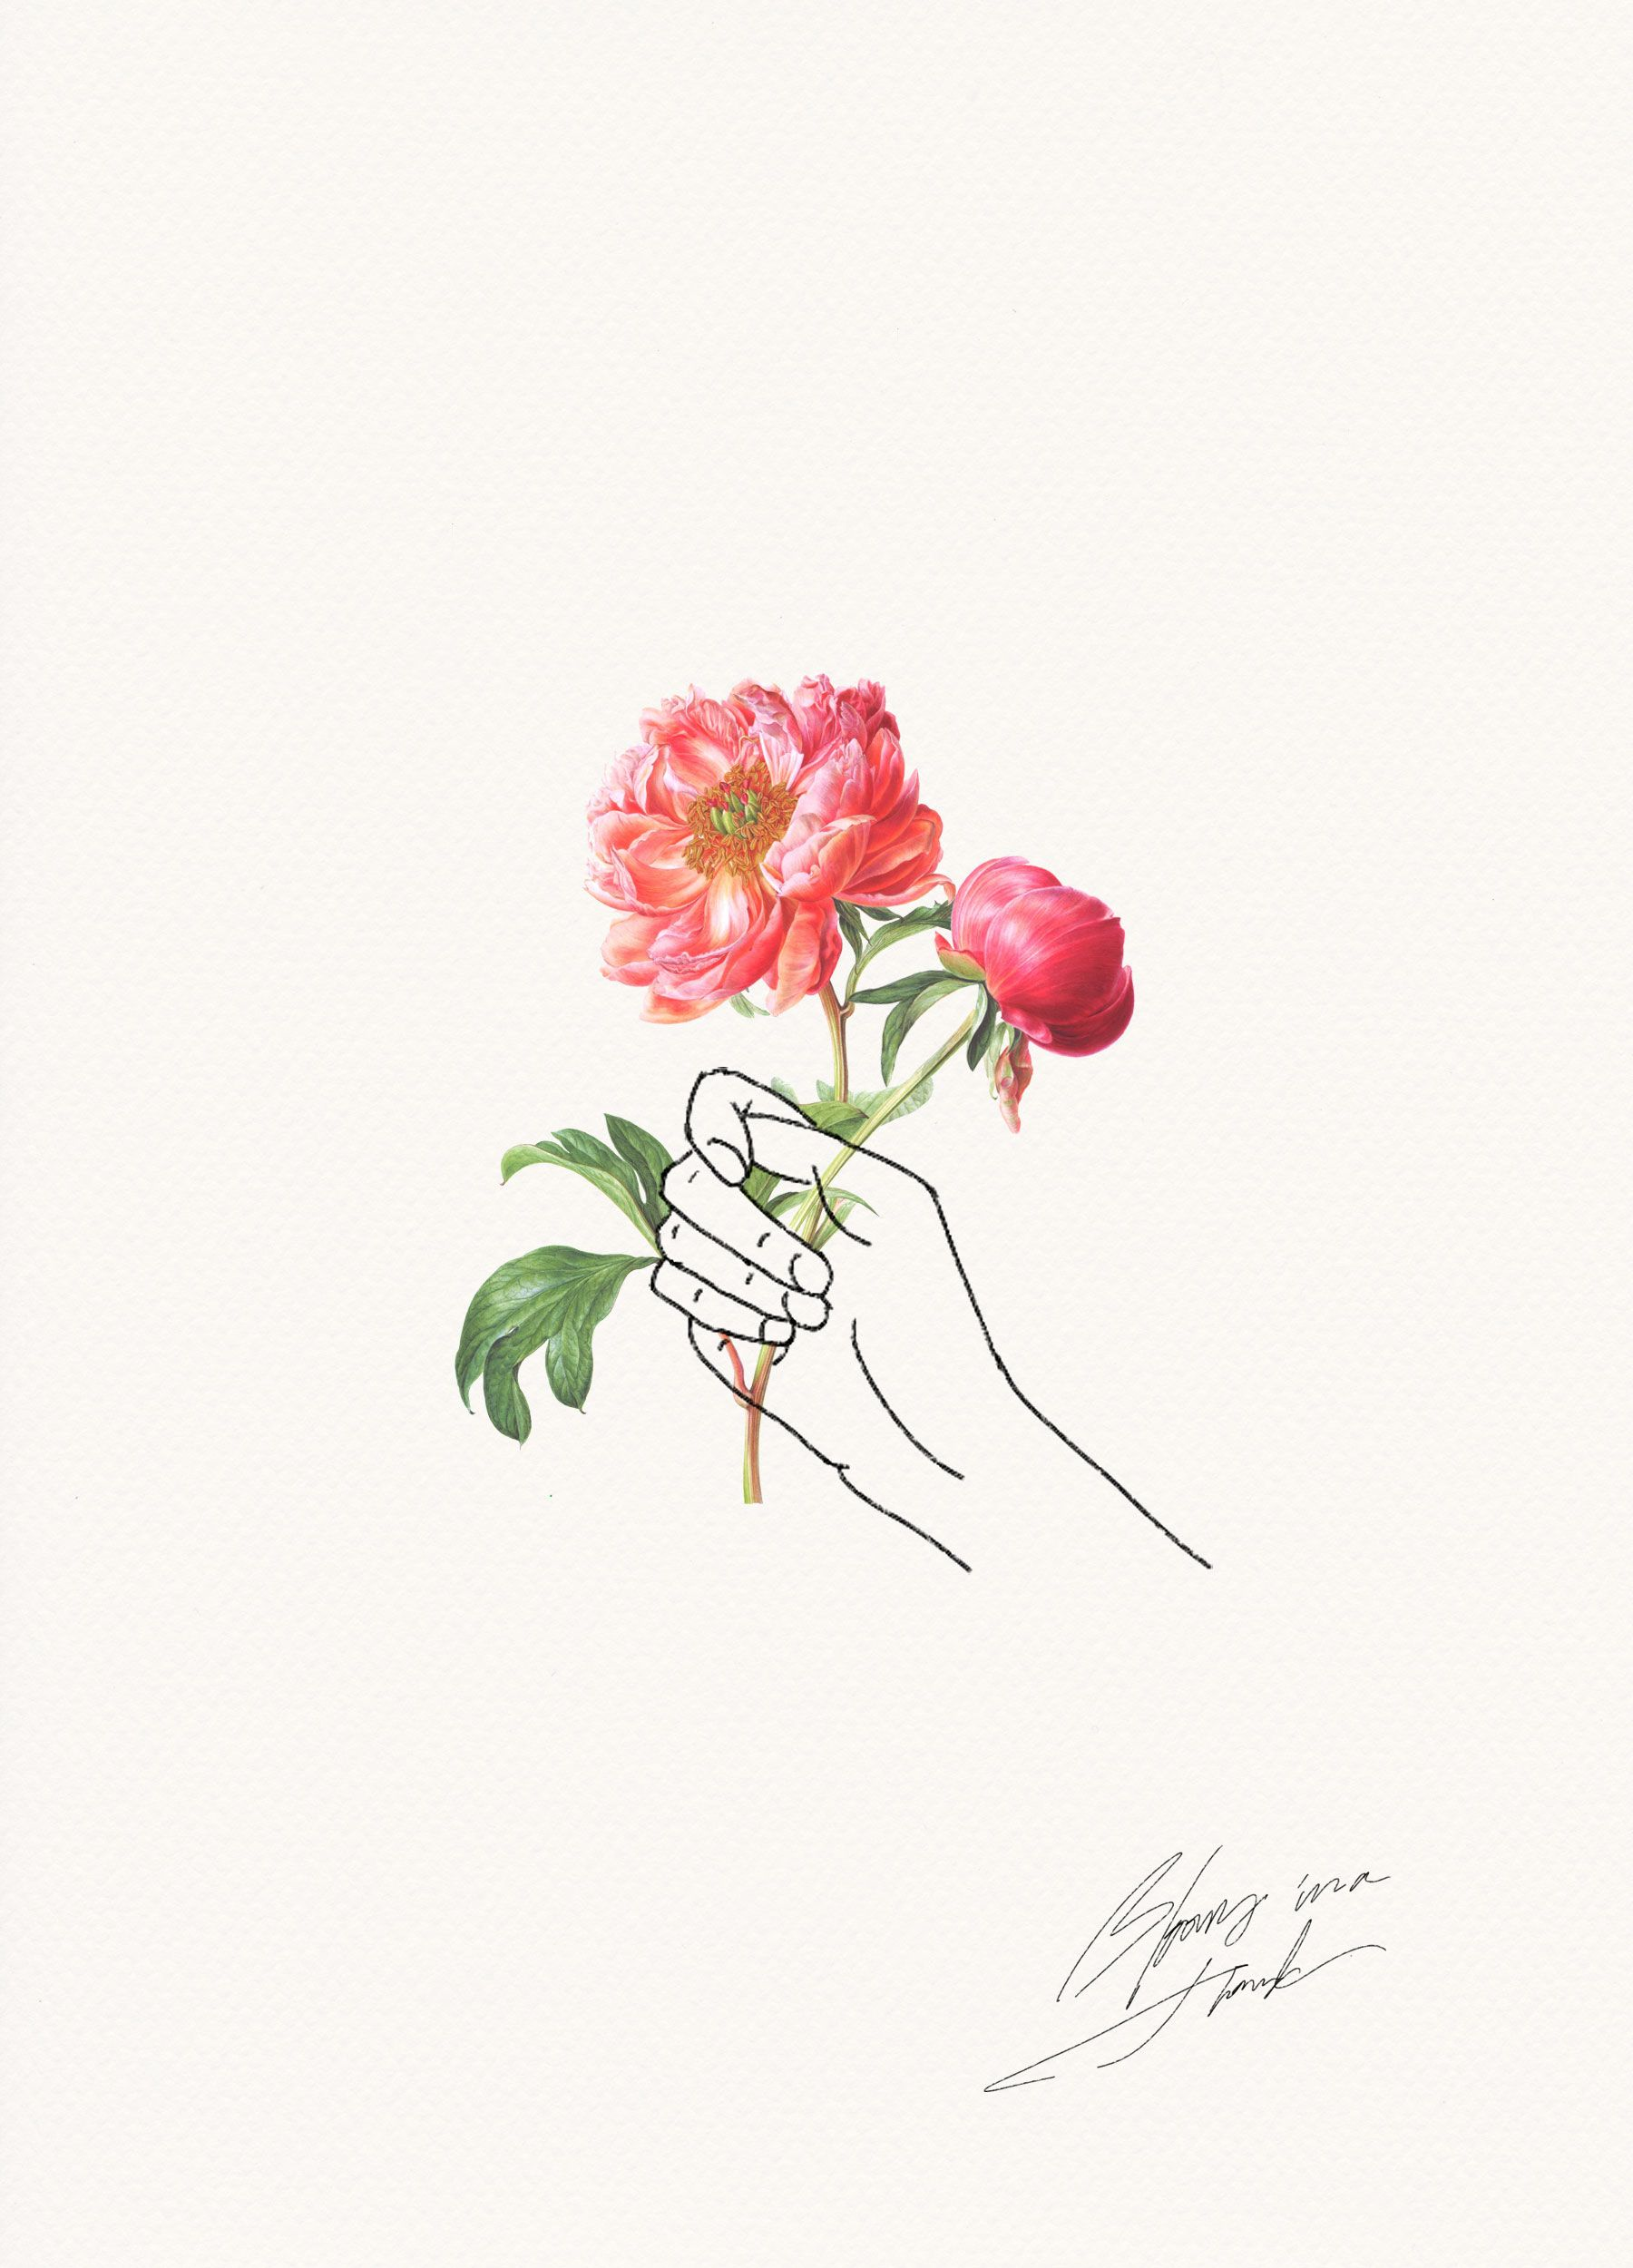 Holding flowers flowers illustrations and tattoo for Hand holding a rose drawing